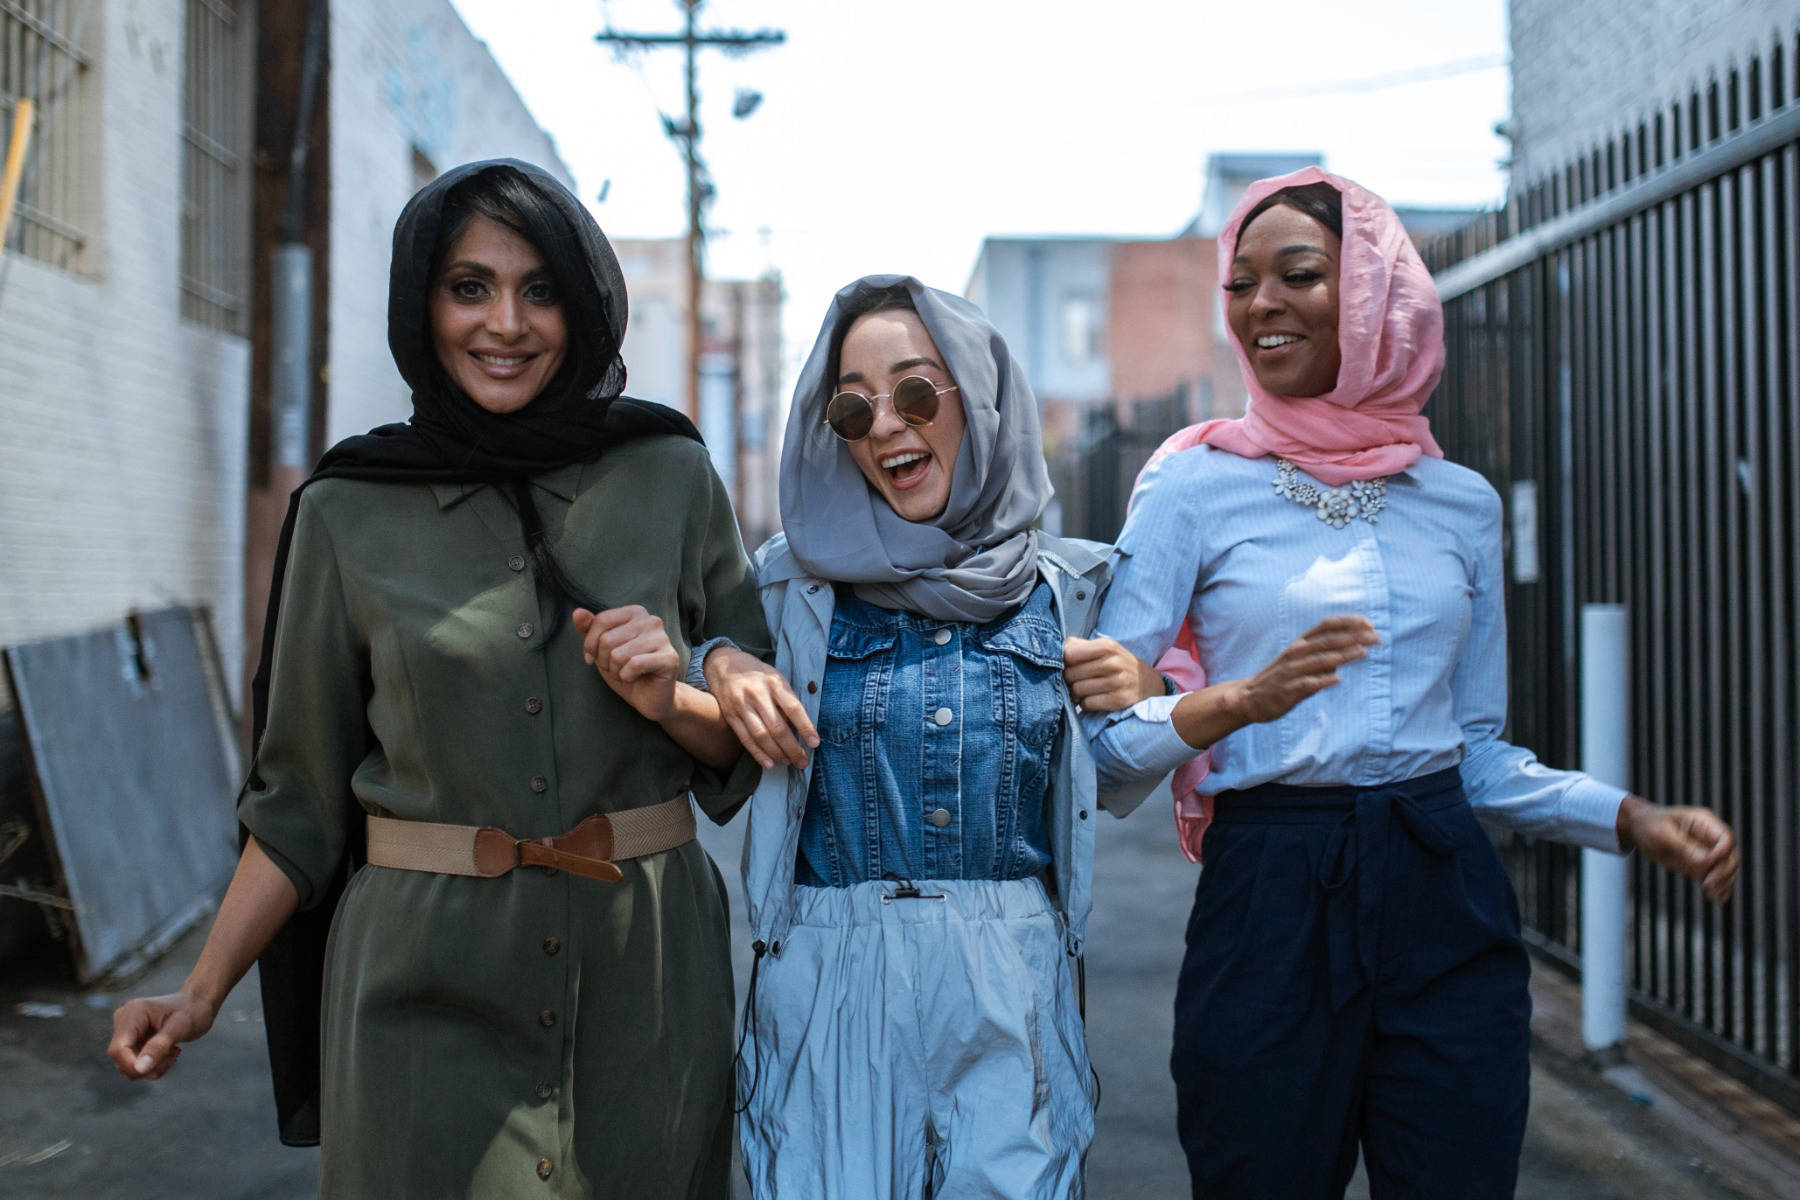 Three women laughing whilst walking down a street